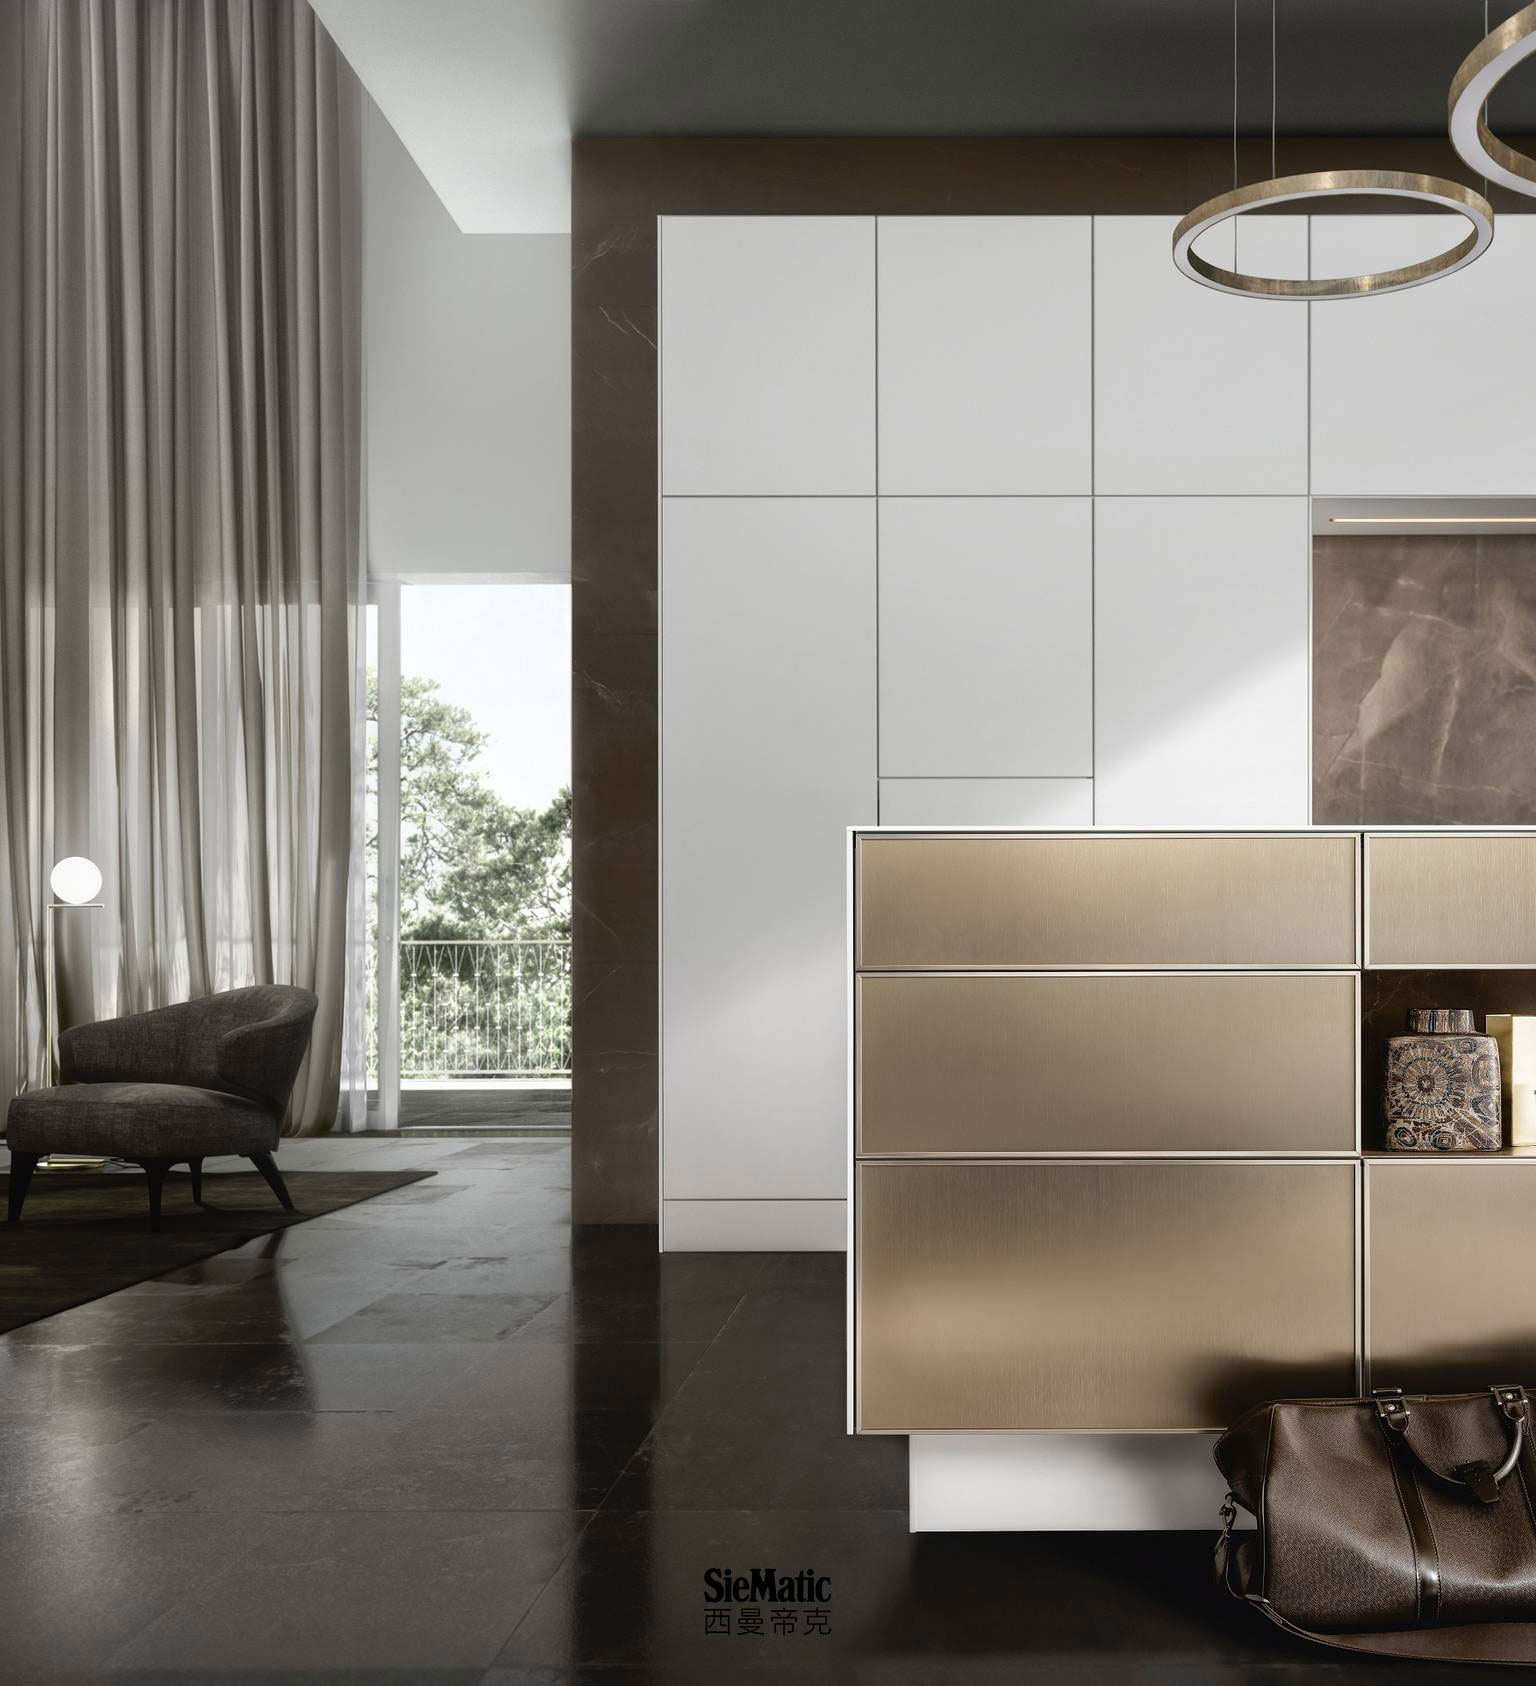 Purist design for a kitchen island in gold bronze metal hue with countertop and side panels in lotus white matte lacquer